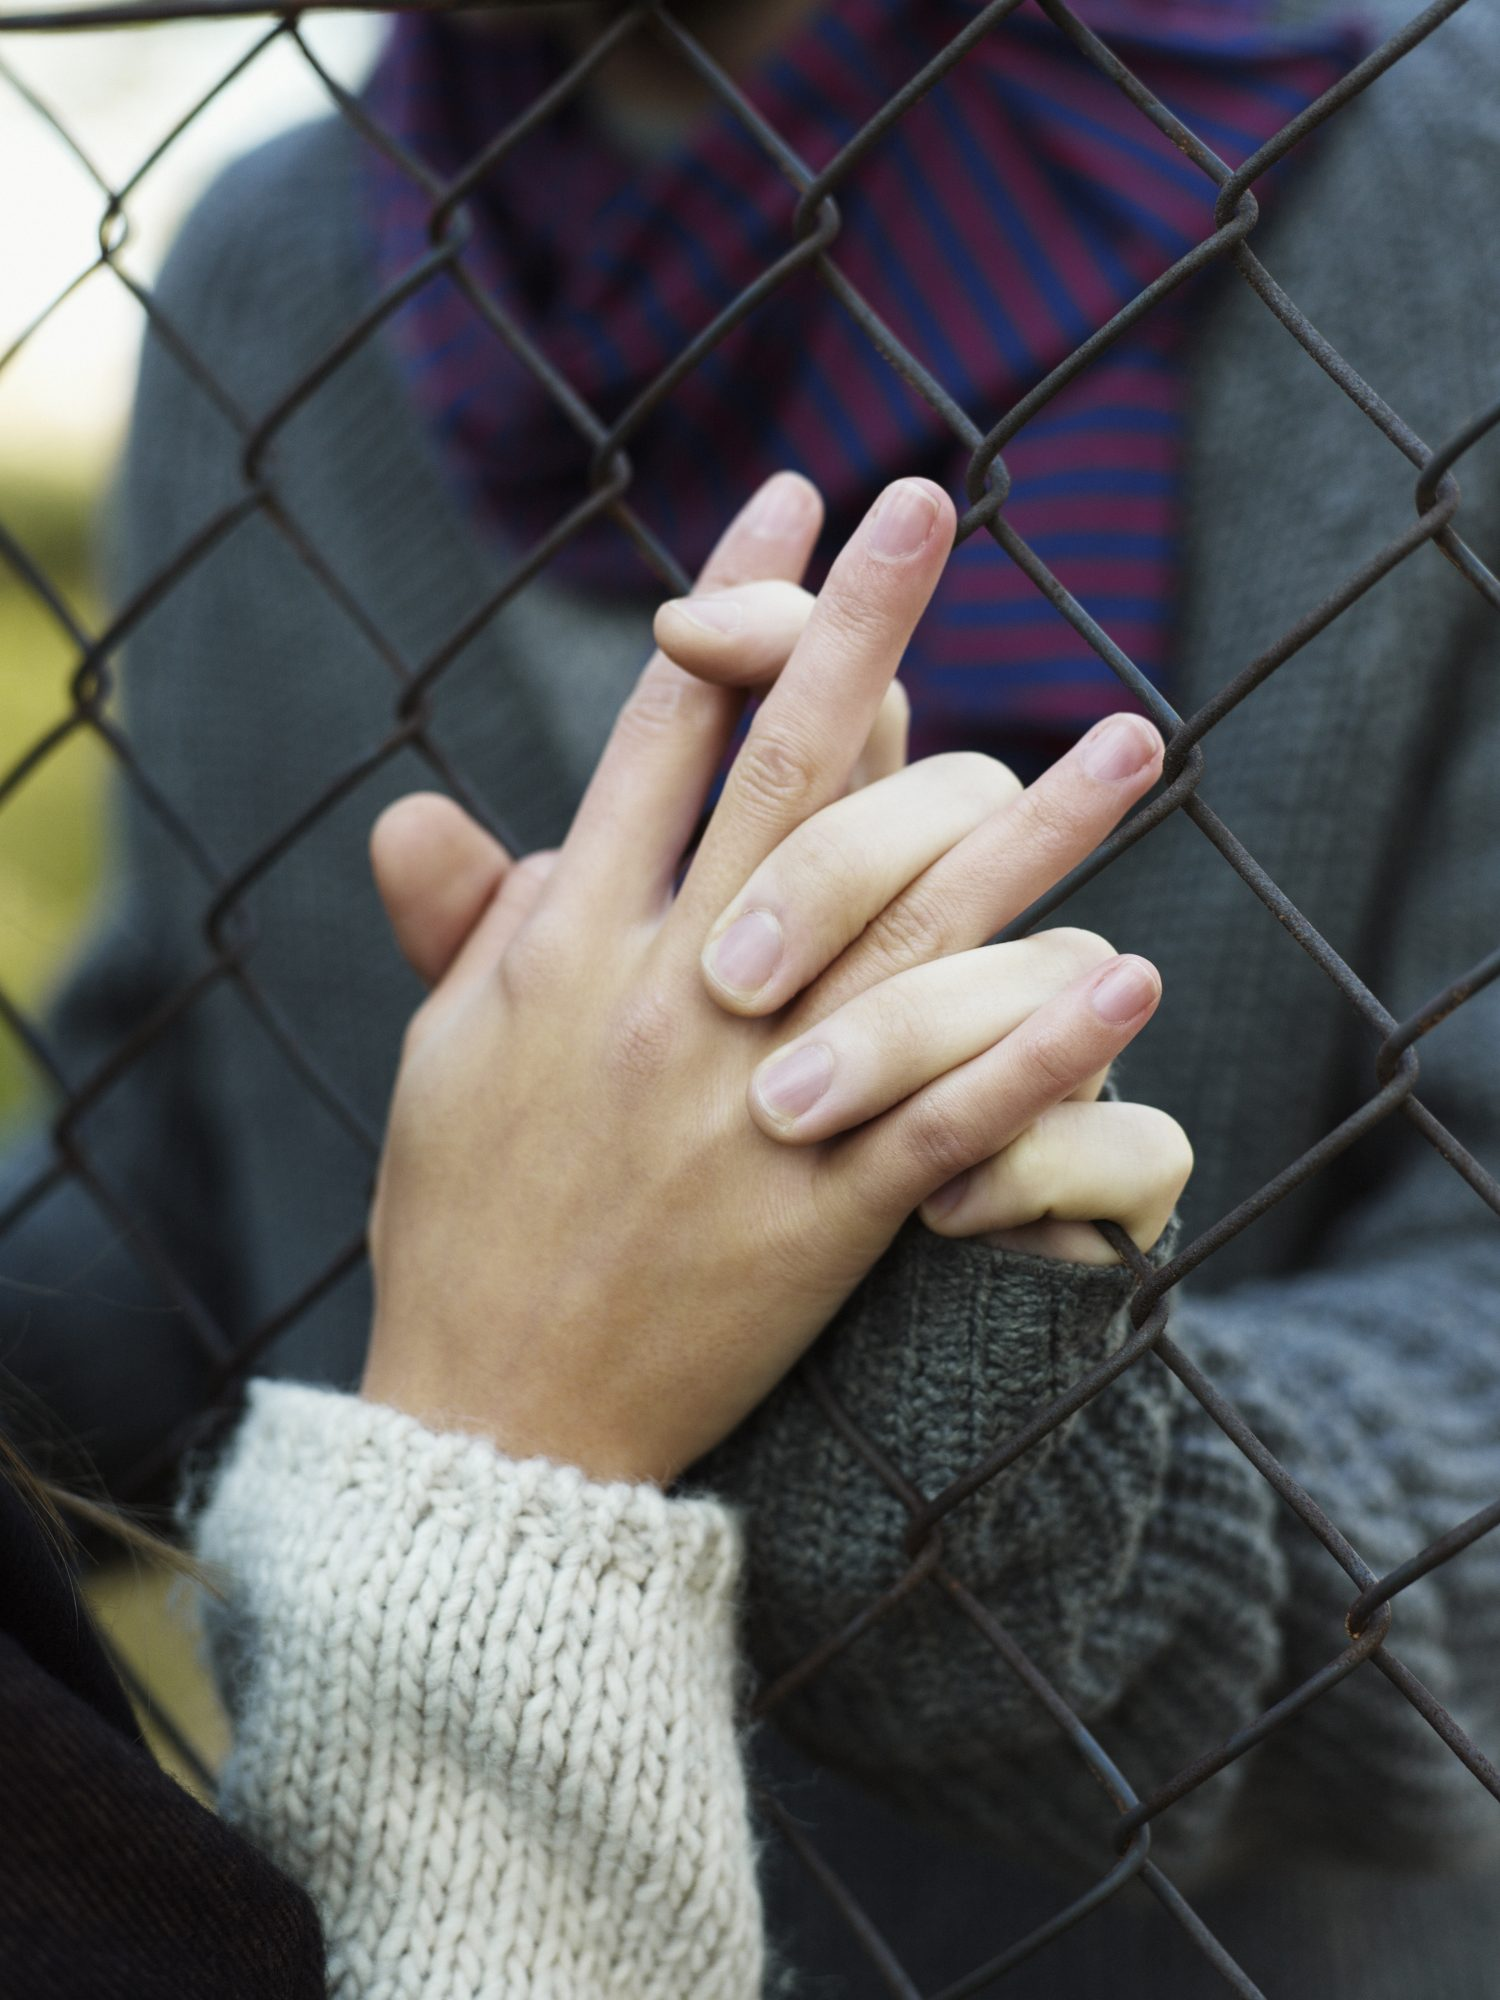 6 Sneaky Ways You're Hurting Your Relationship